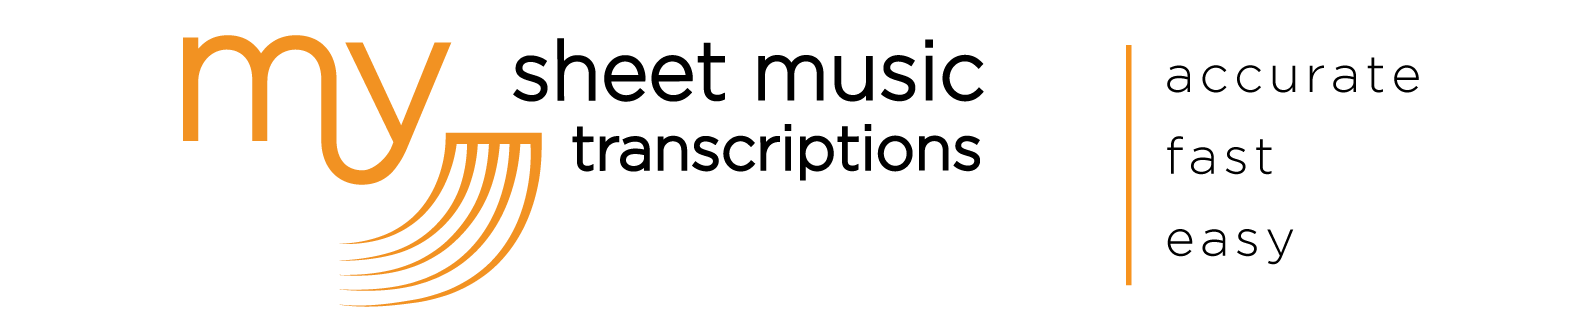 My Sheet Music Transcriptions • Music Transcription Service